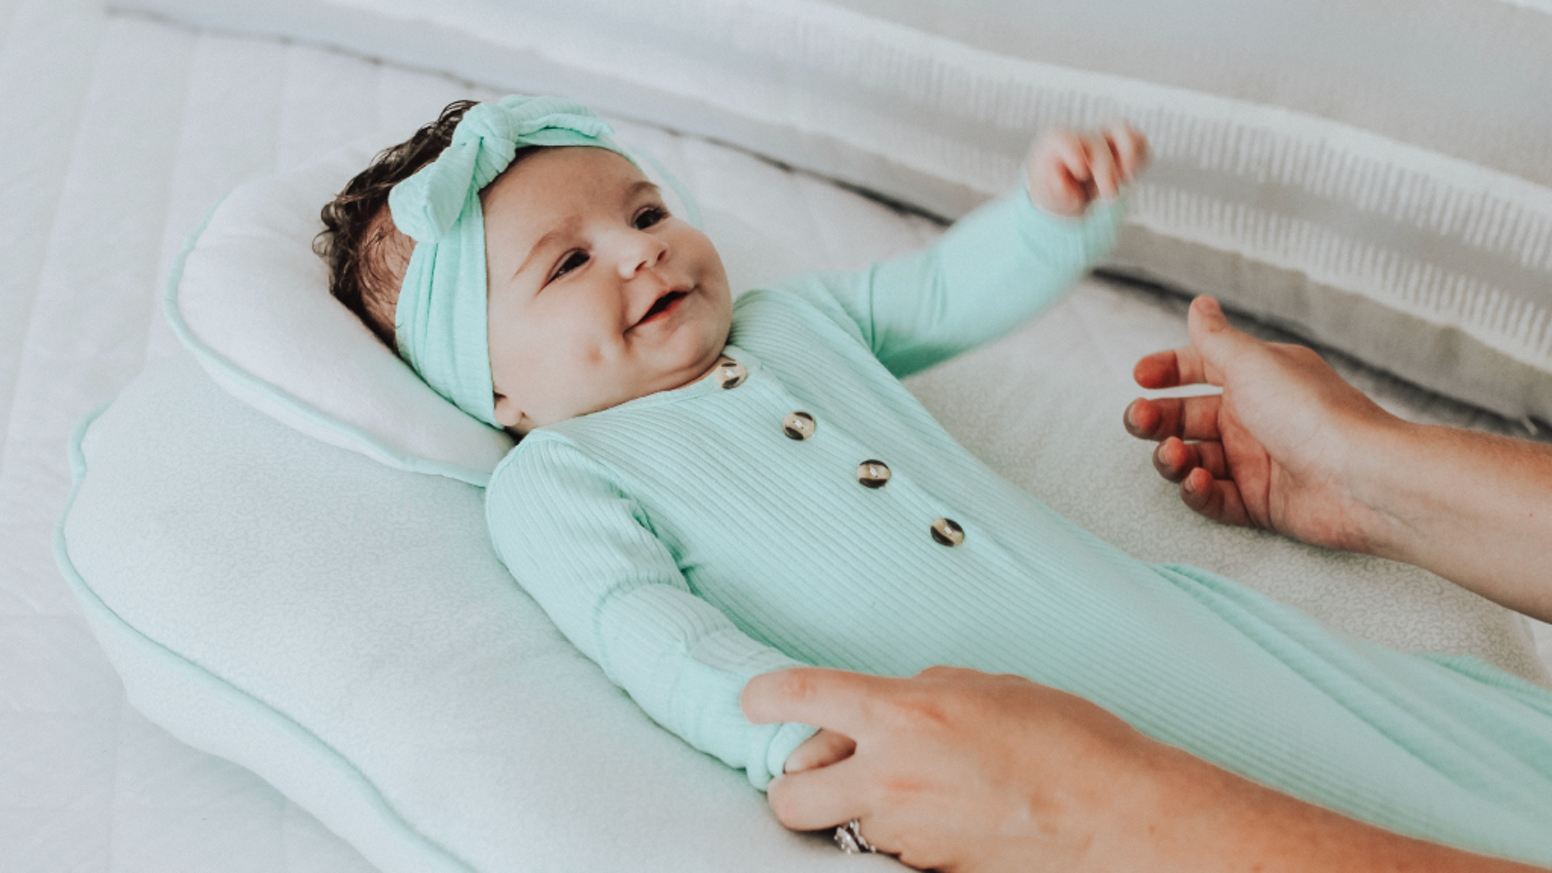 A 3-in-1 baby product, perfect for tummy time, lounging, and breast-feeding.